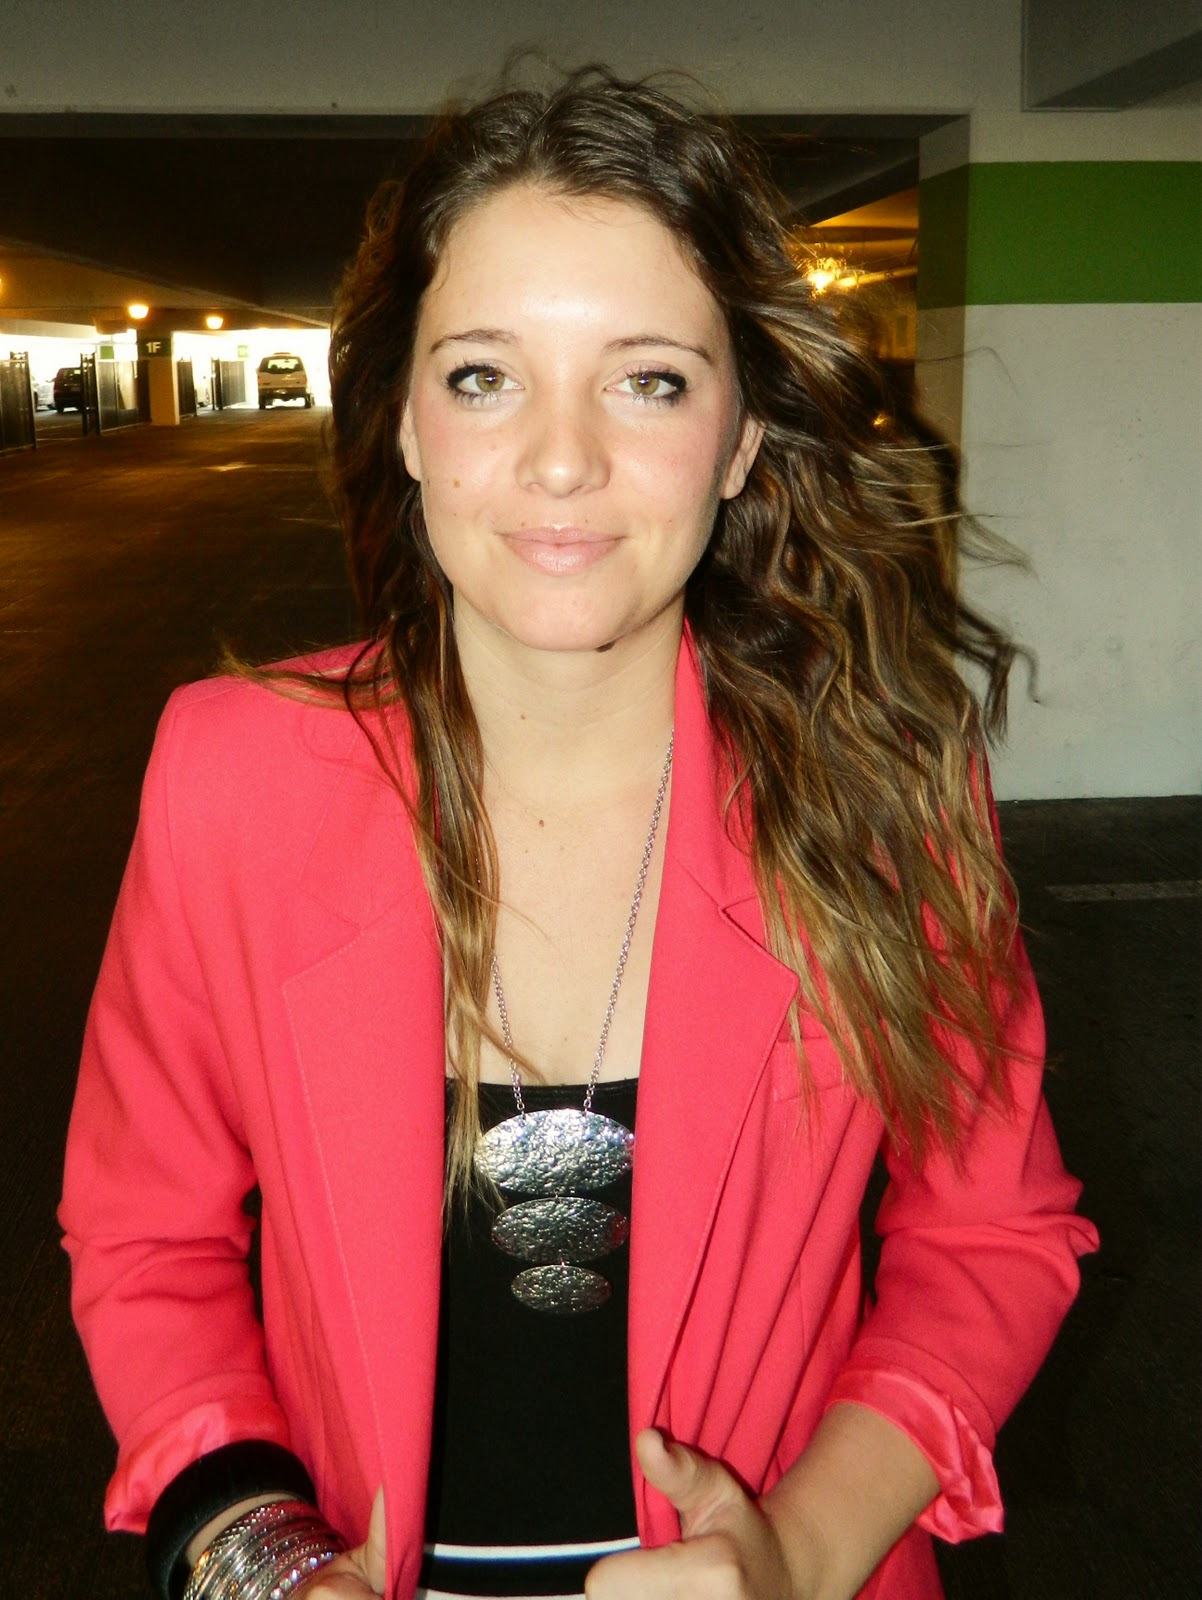 Hot pink blazer, black top